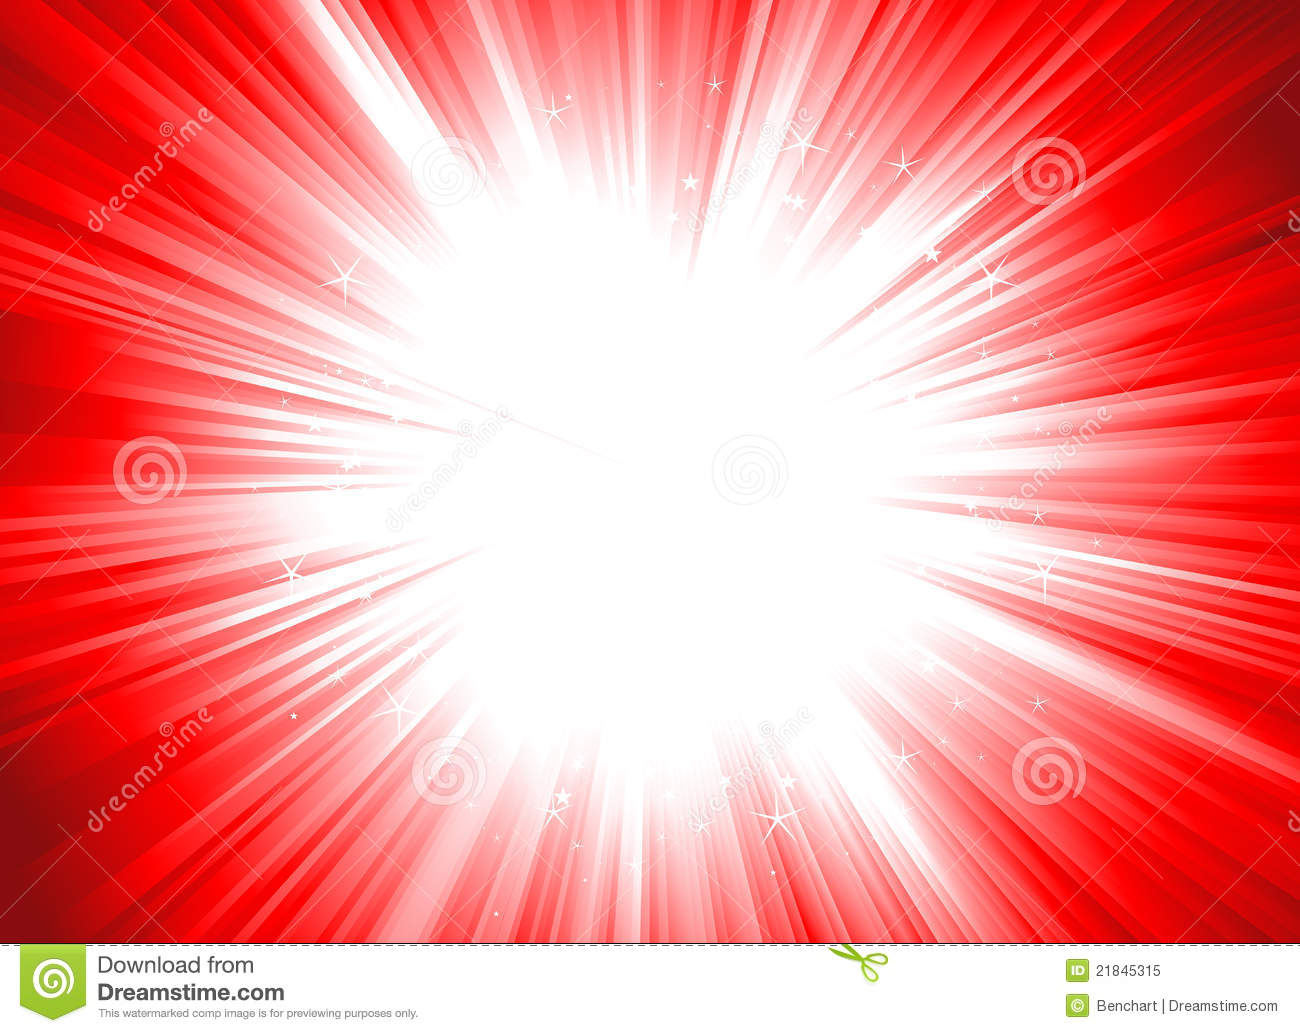 Illustration Of A Christmas Shiny Starburst  Dynamic Editable Colors